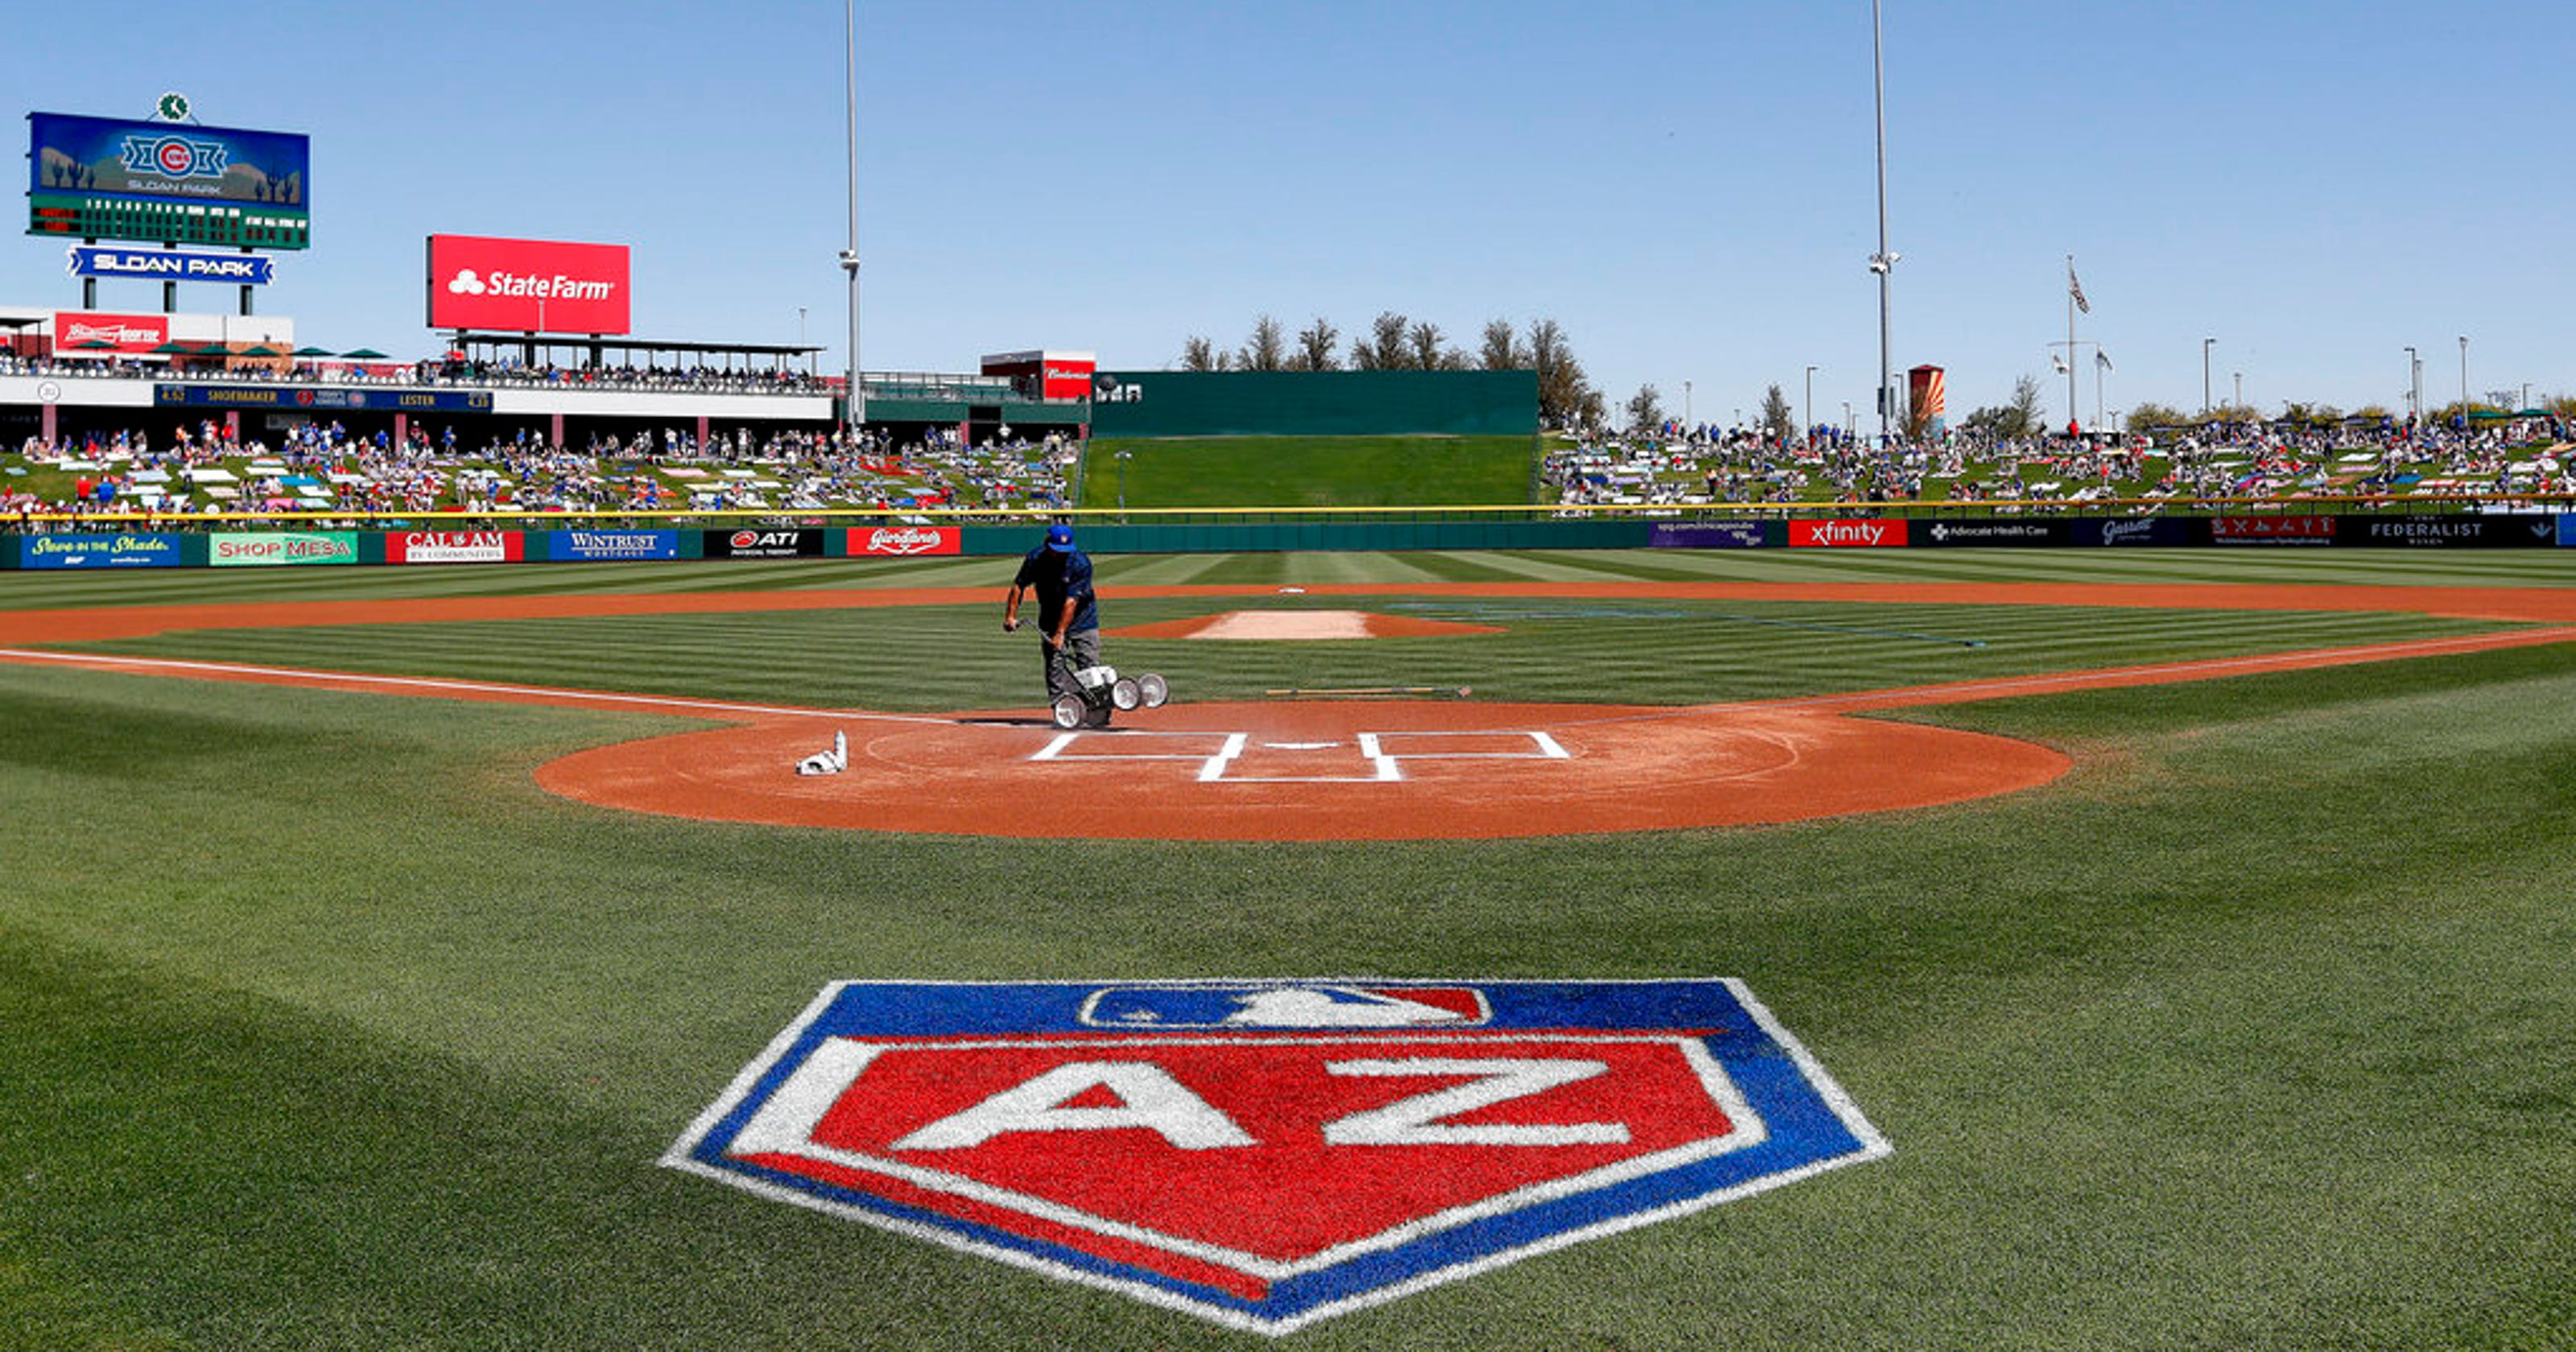 With early start and fewer games in 2018, Cactus League